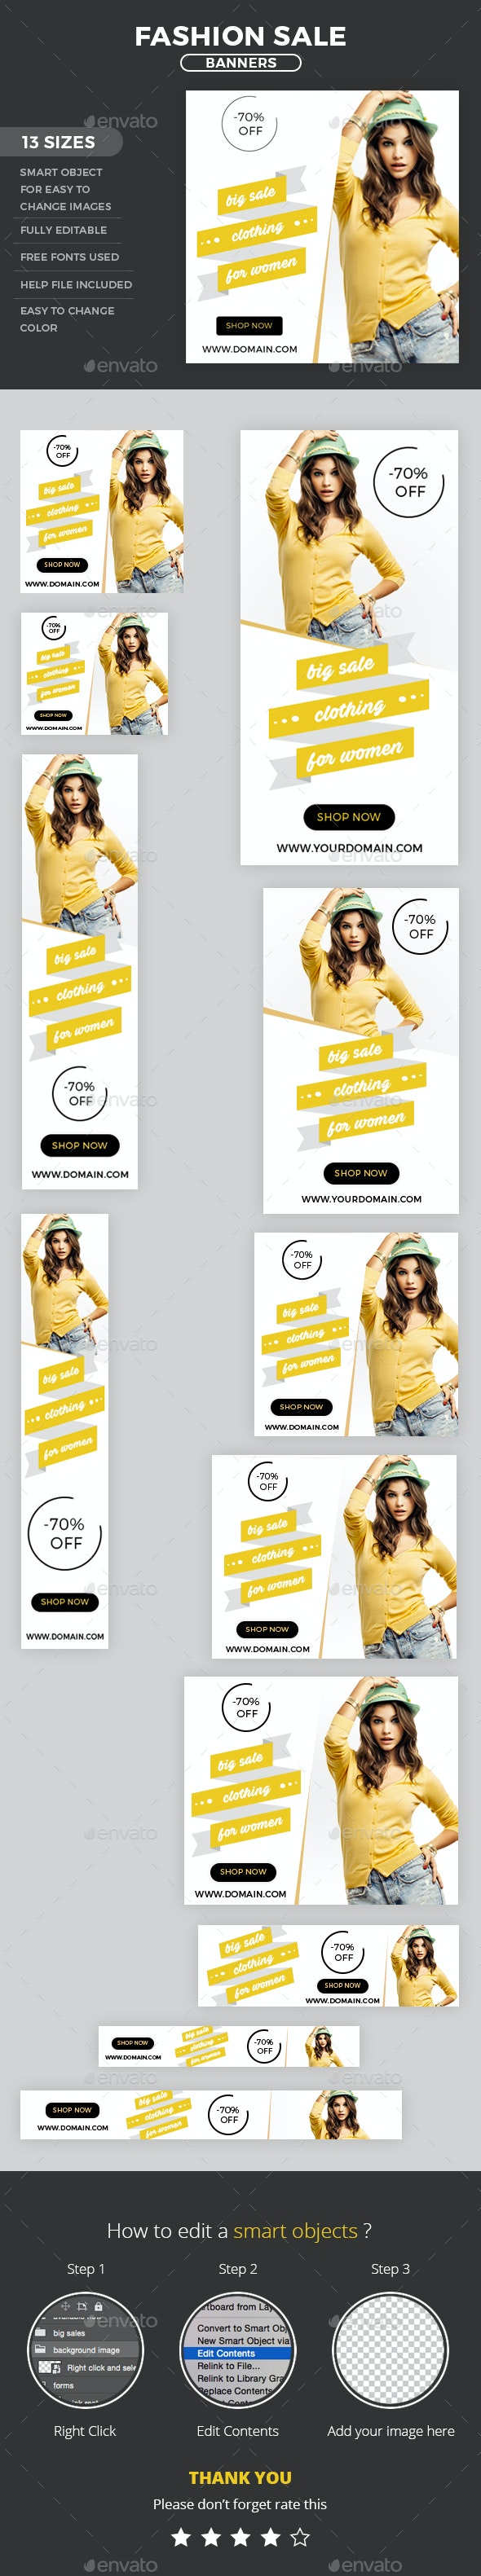 Fashion Web Banners - Banners & Ads Web Elements